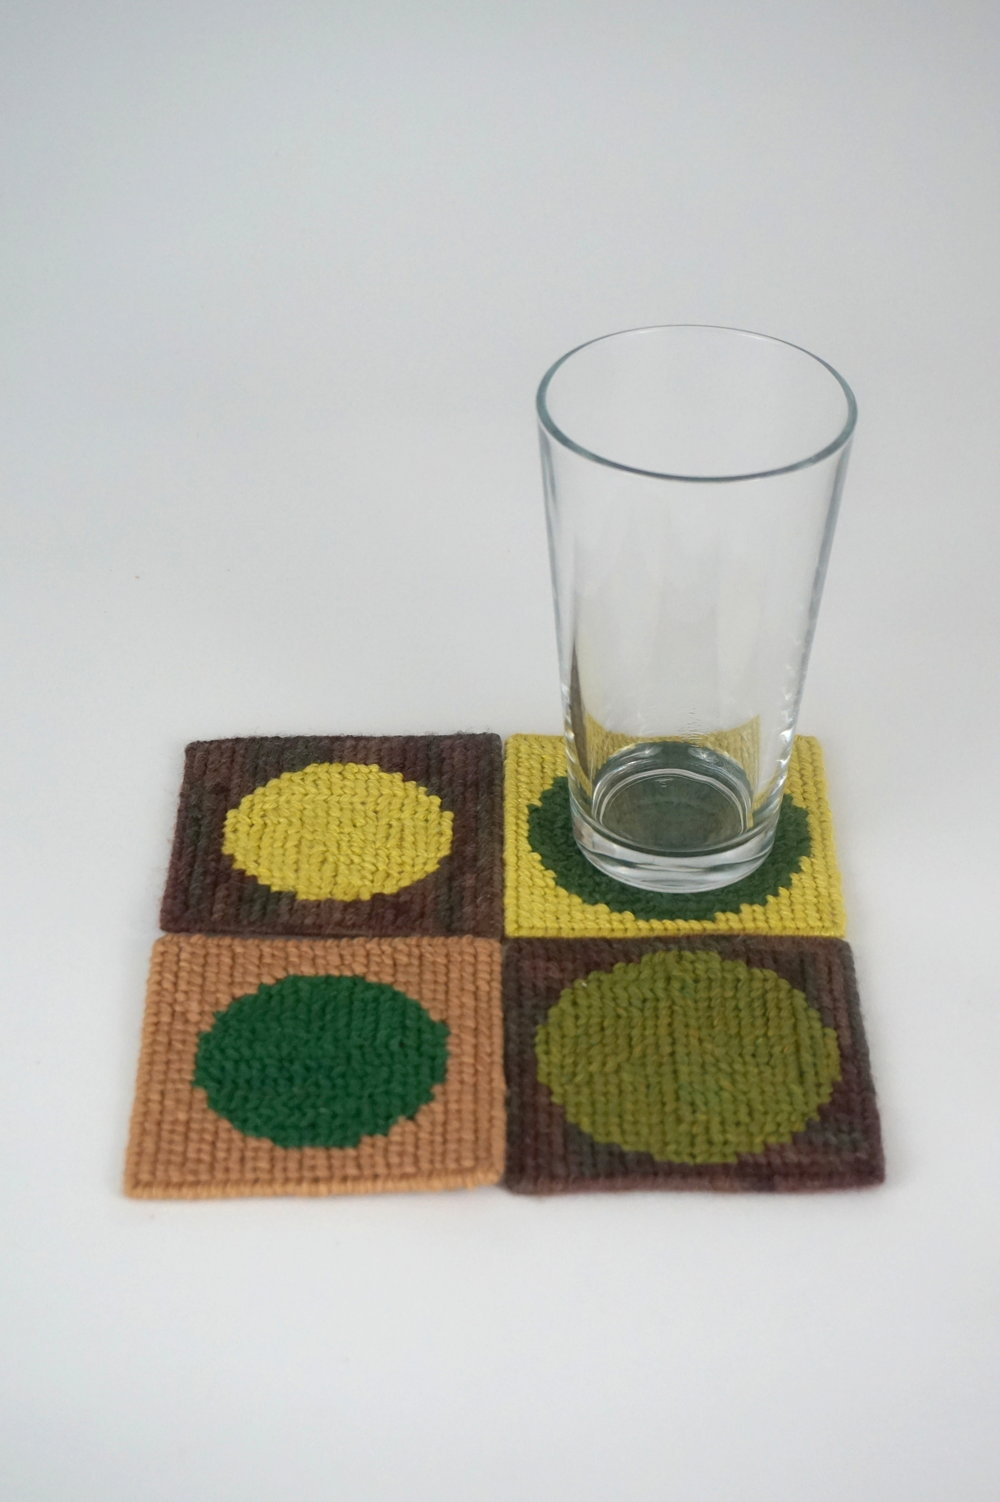 Irrigated Fields Coasters - 7.5 x 7.5salvaged plastic canvas and yarnCondensation drips from the glass and waters the fields.